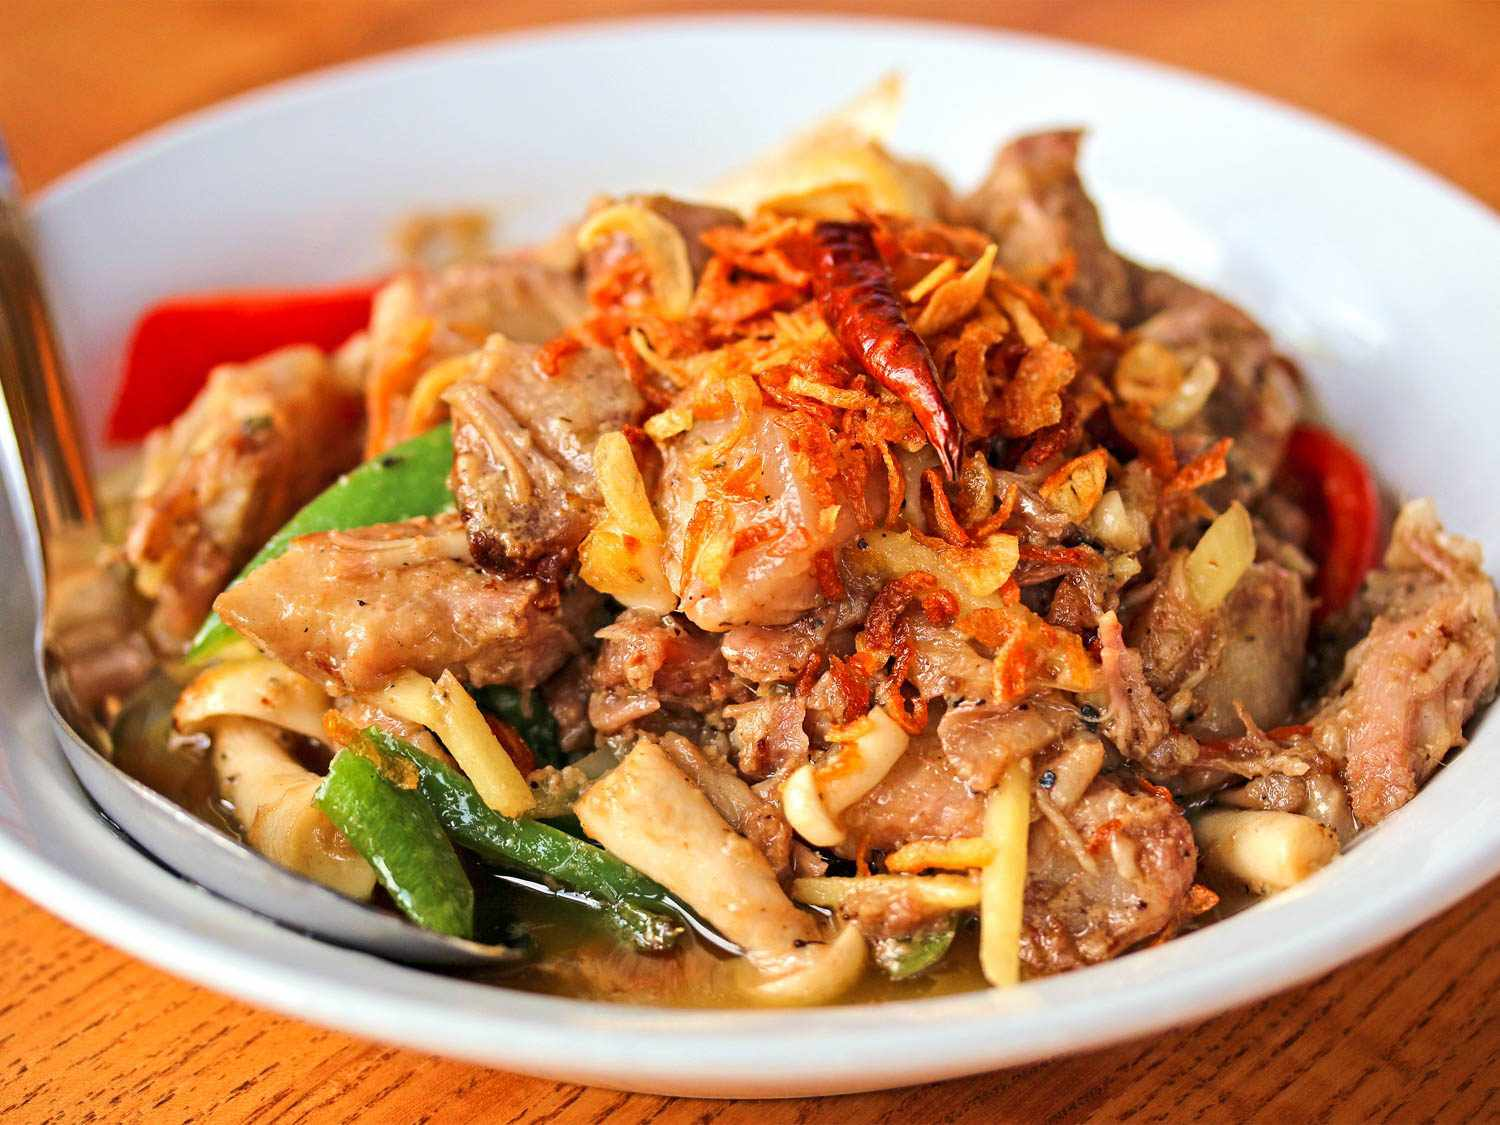 A plate of muu som: fermented pork belly with chilies and fried shallots